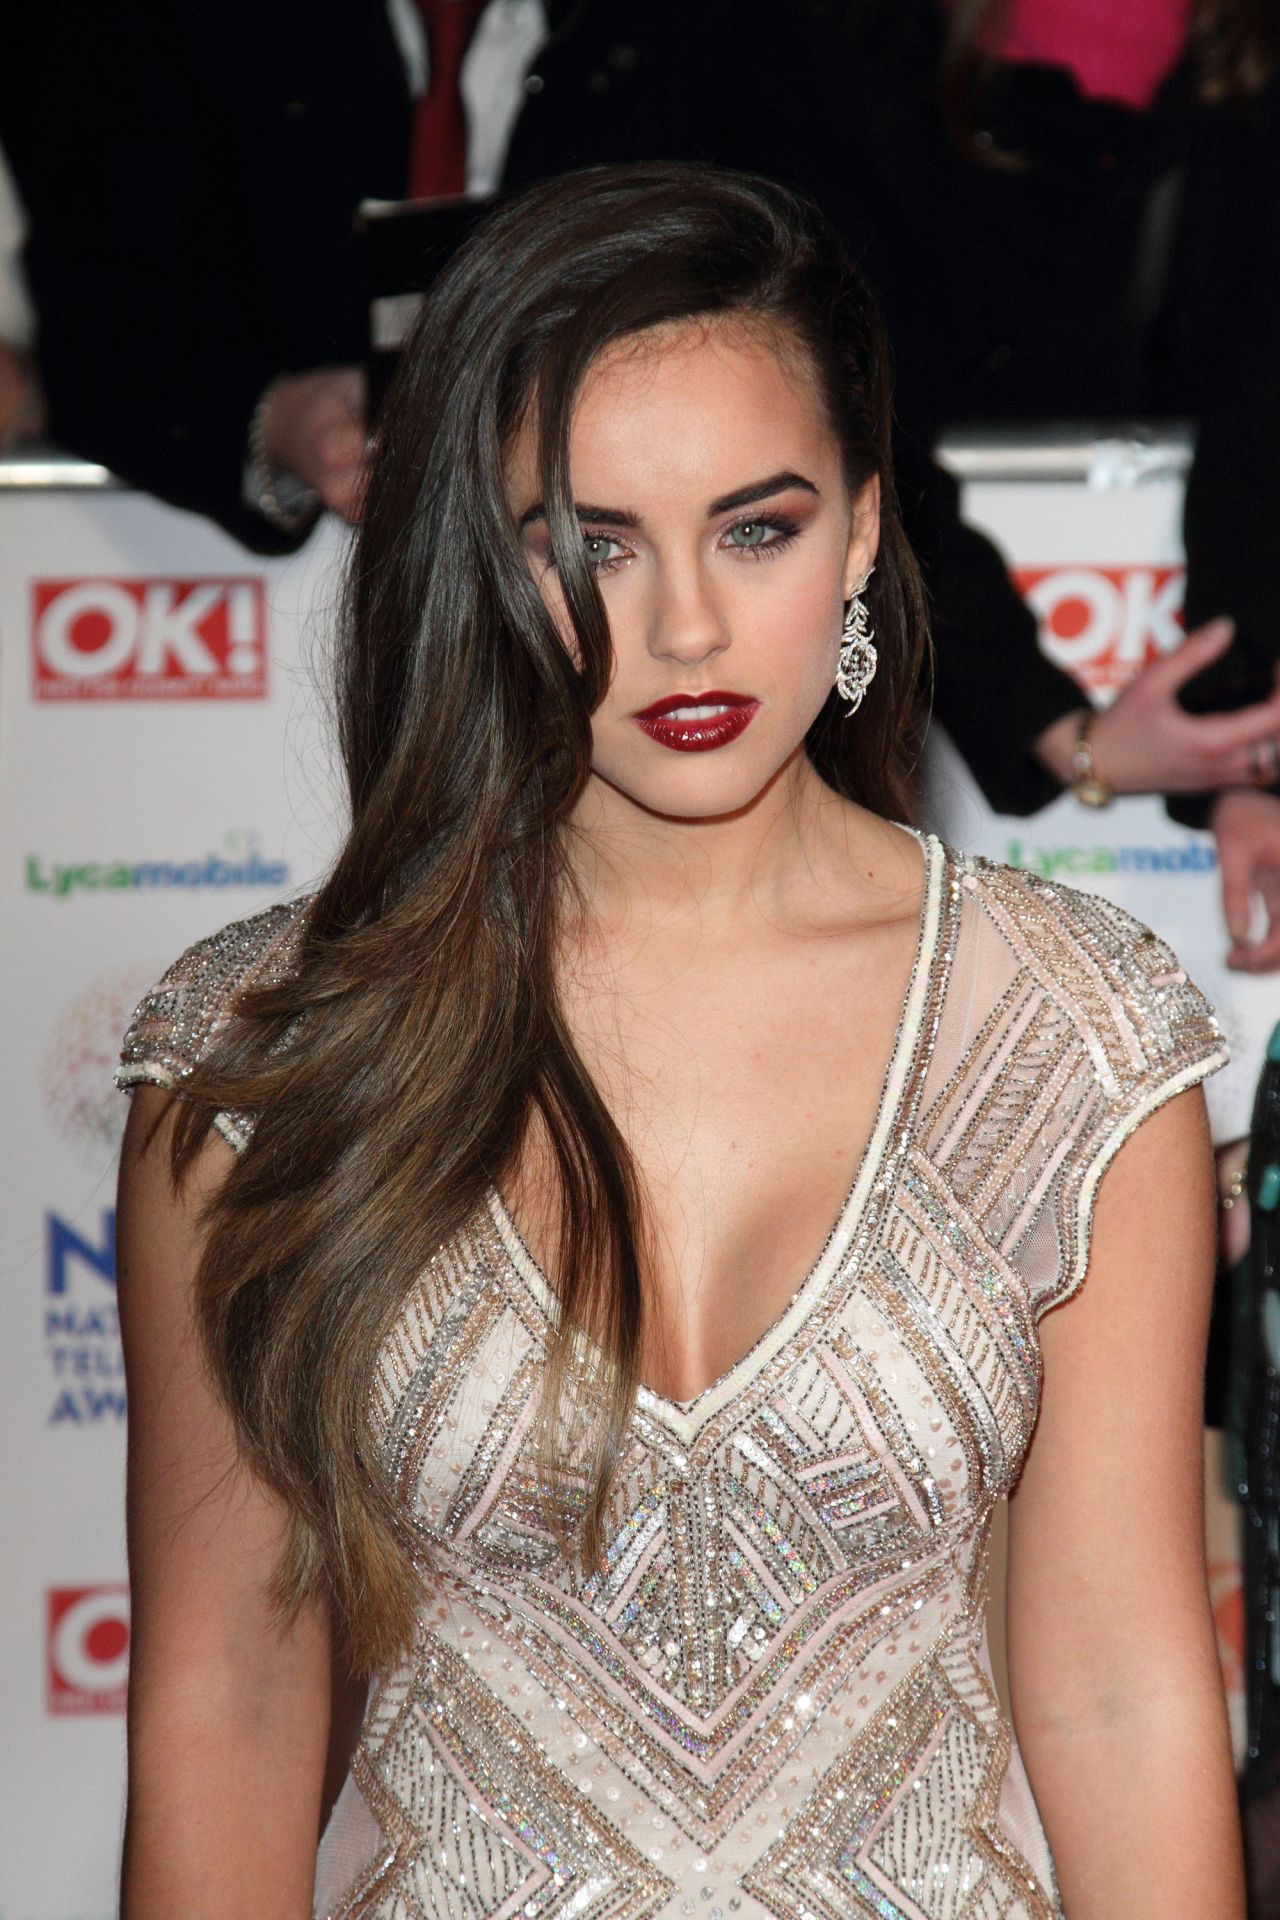 Georgia May Foote at National Television Awards 2014 in London